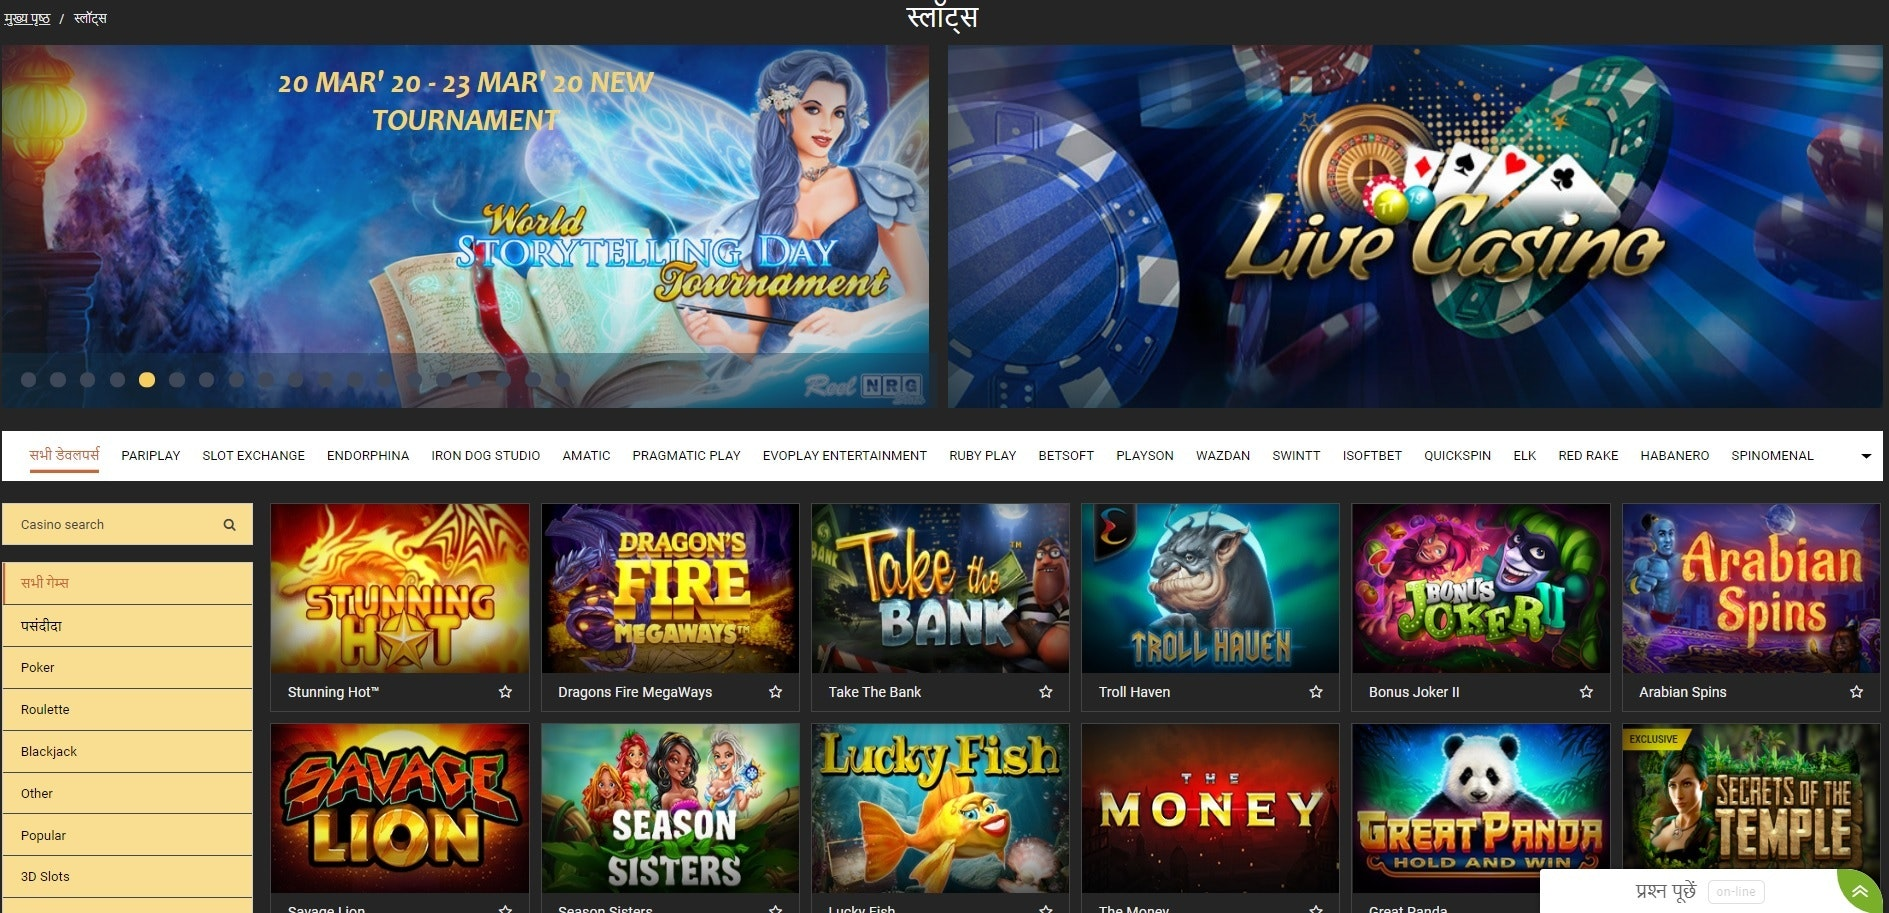 Greatest Poker Training Websites Update Your Game